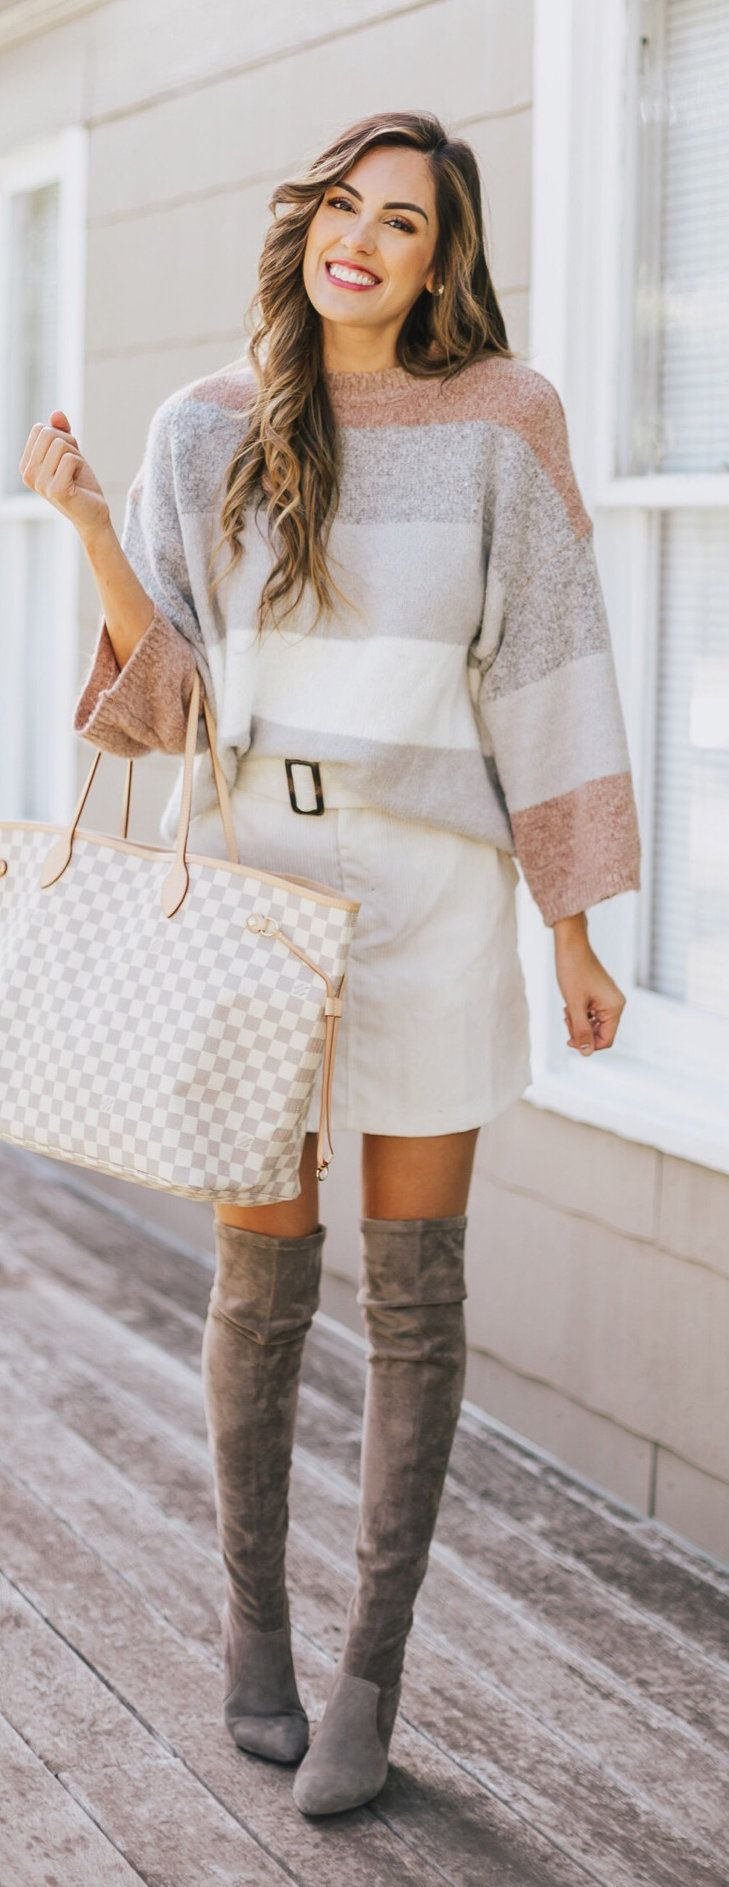 multicolored sweater, white skirt, and pair of gray thigh-high boots